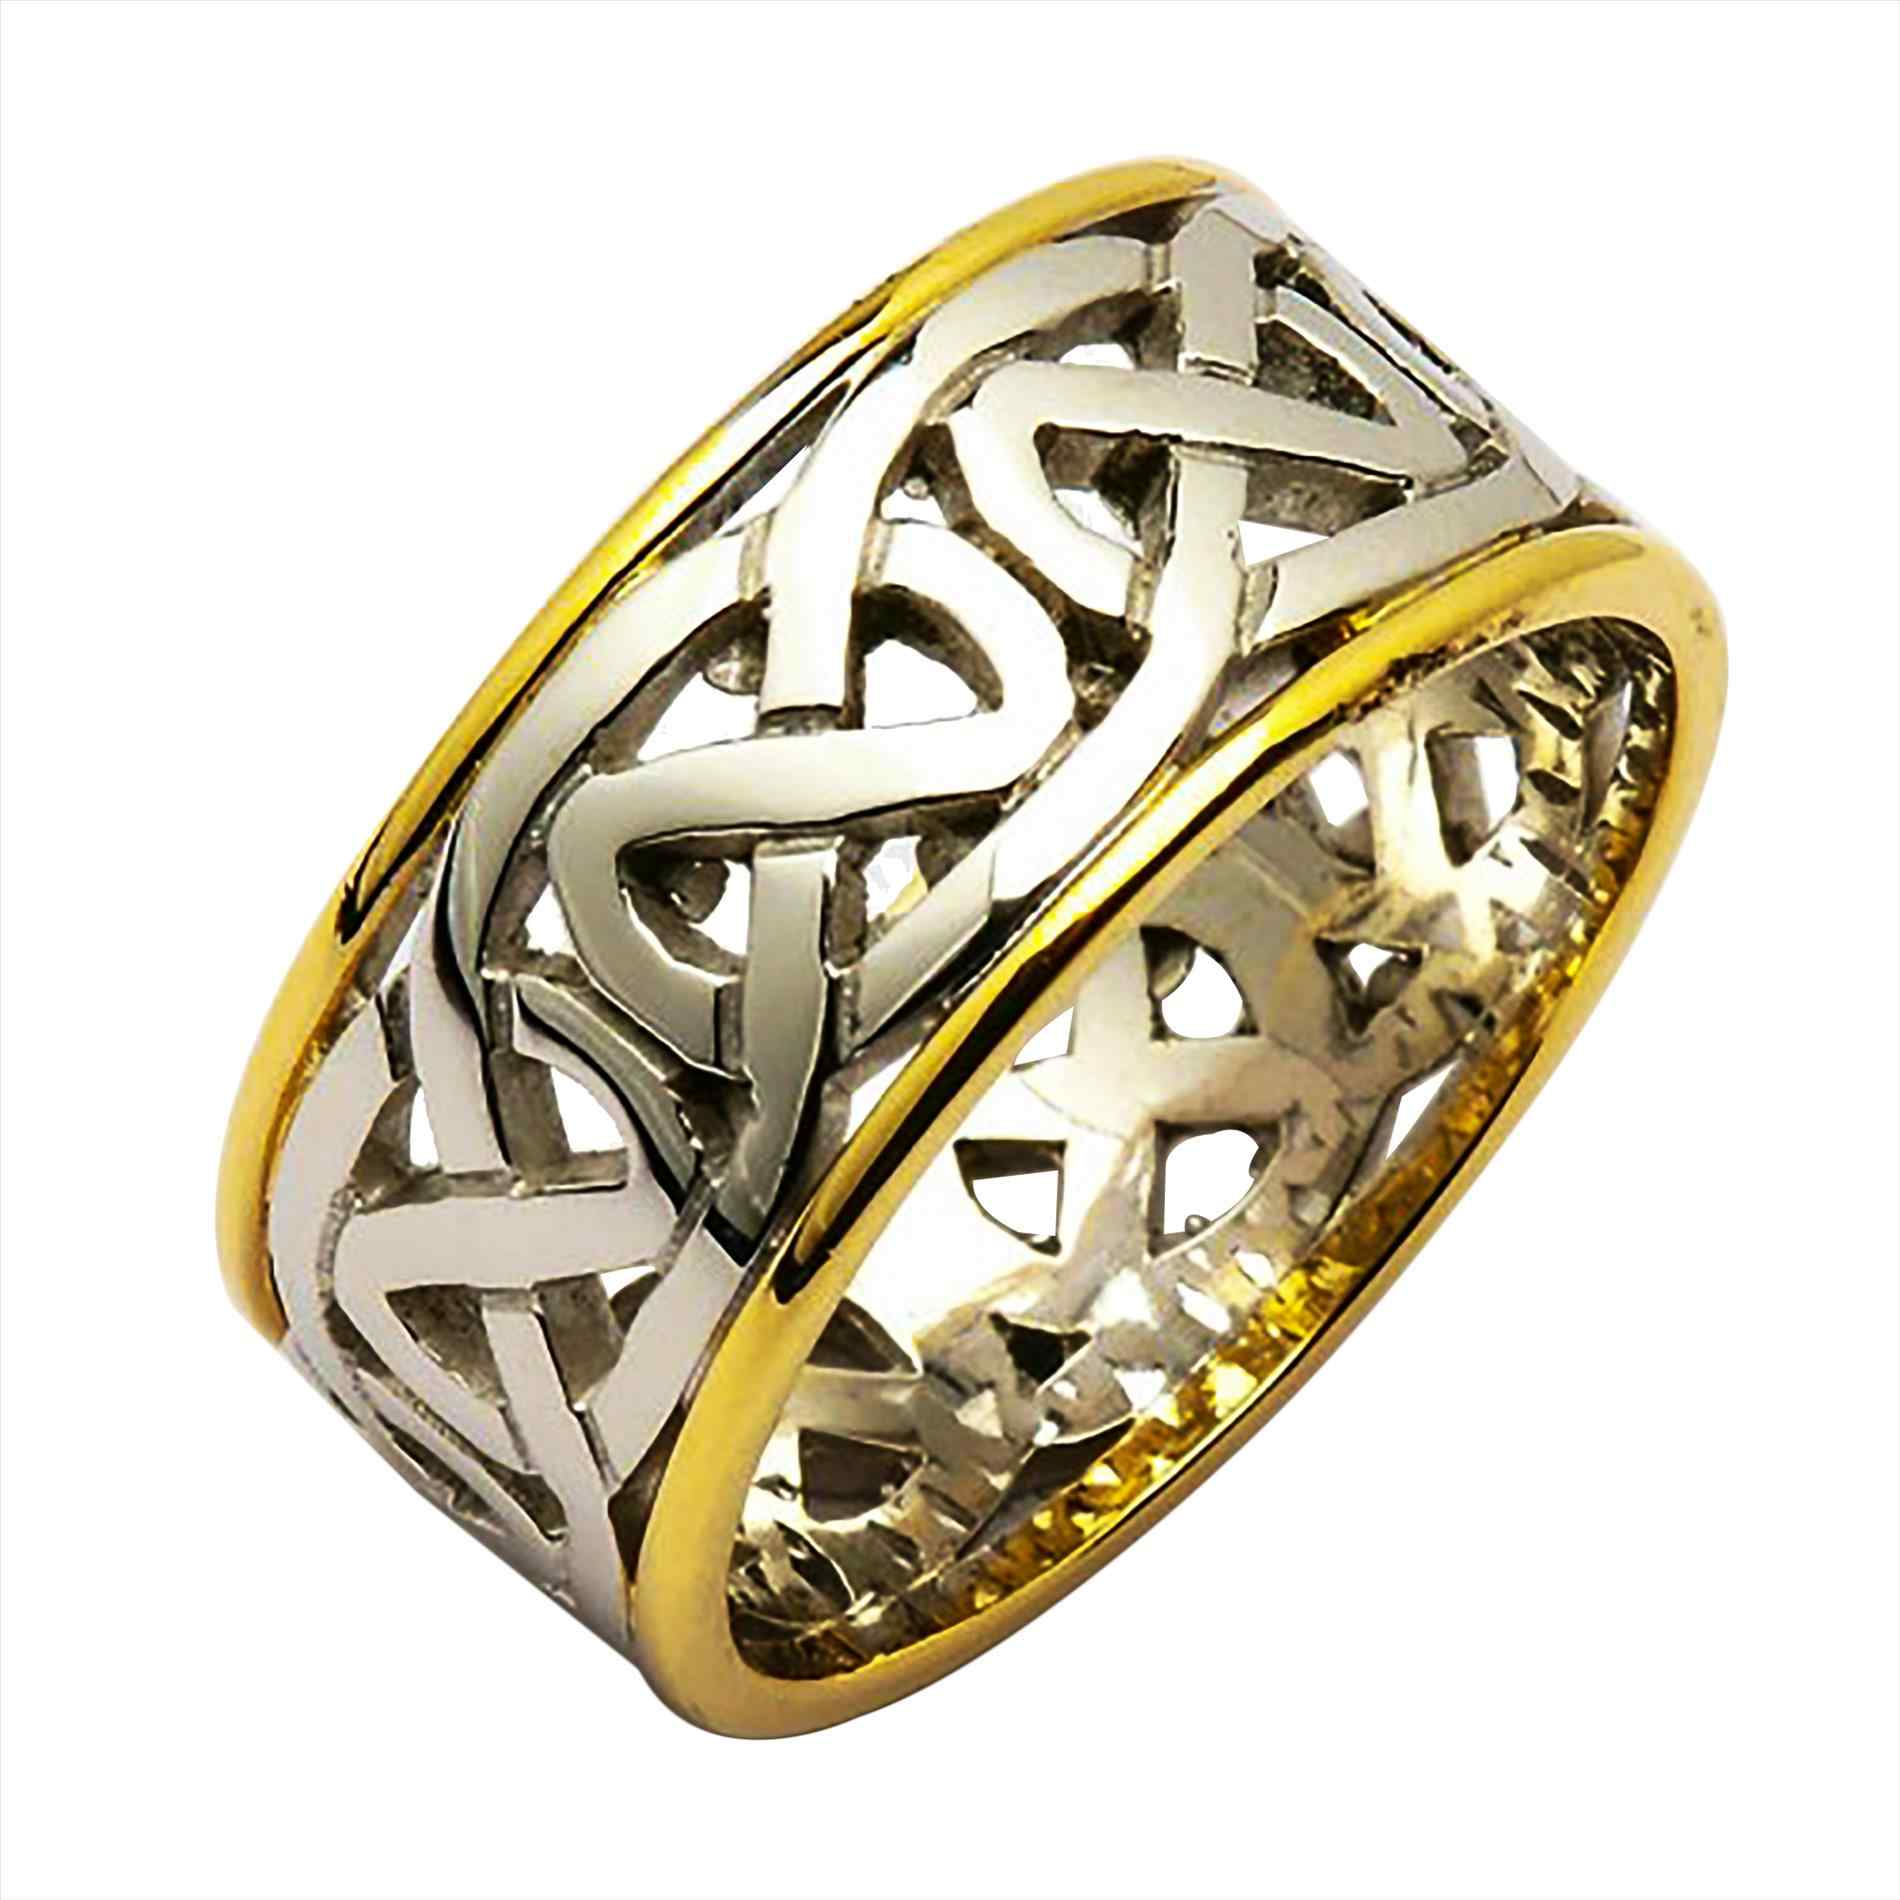 pattern male band gold traditional celtic jewellery white full scottish knot of men beautiful zirconia pillow irish rings fresh coloured and diamond bands claddagh women gaelic size page trinity sets ring mens ideas jewelry for cubic two wedding titanium concept engagement large dublin fine set